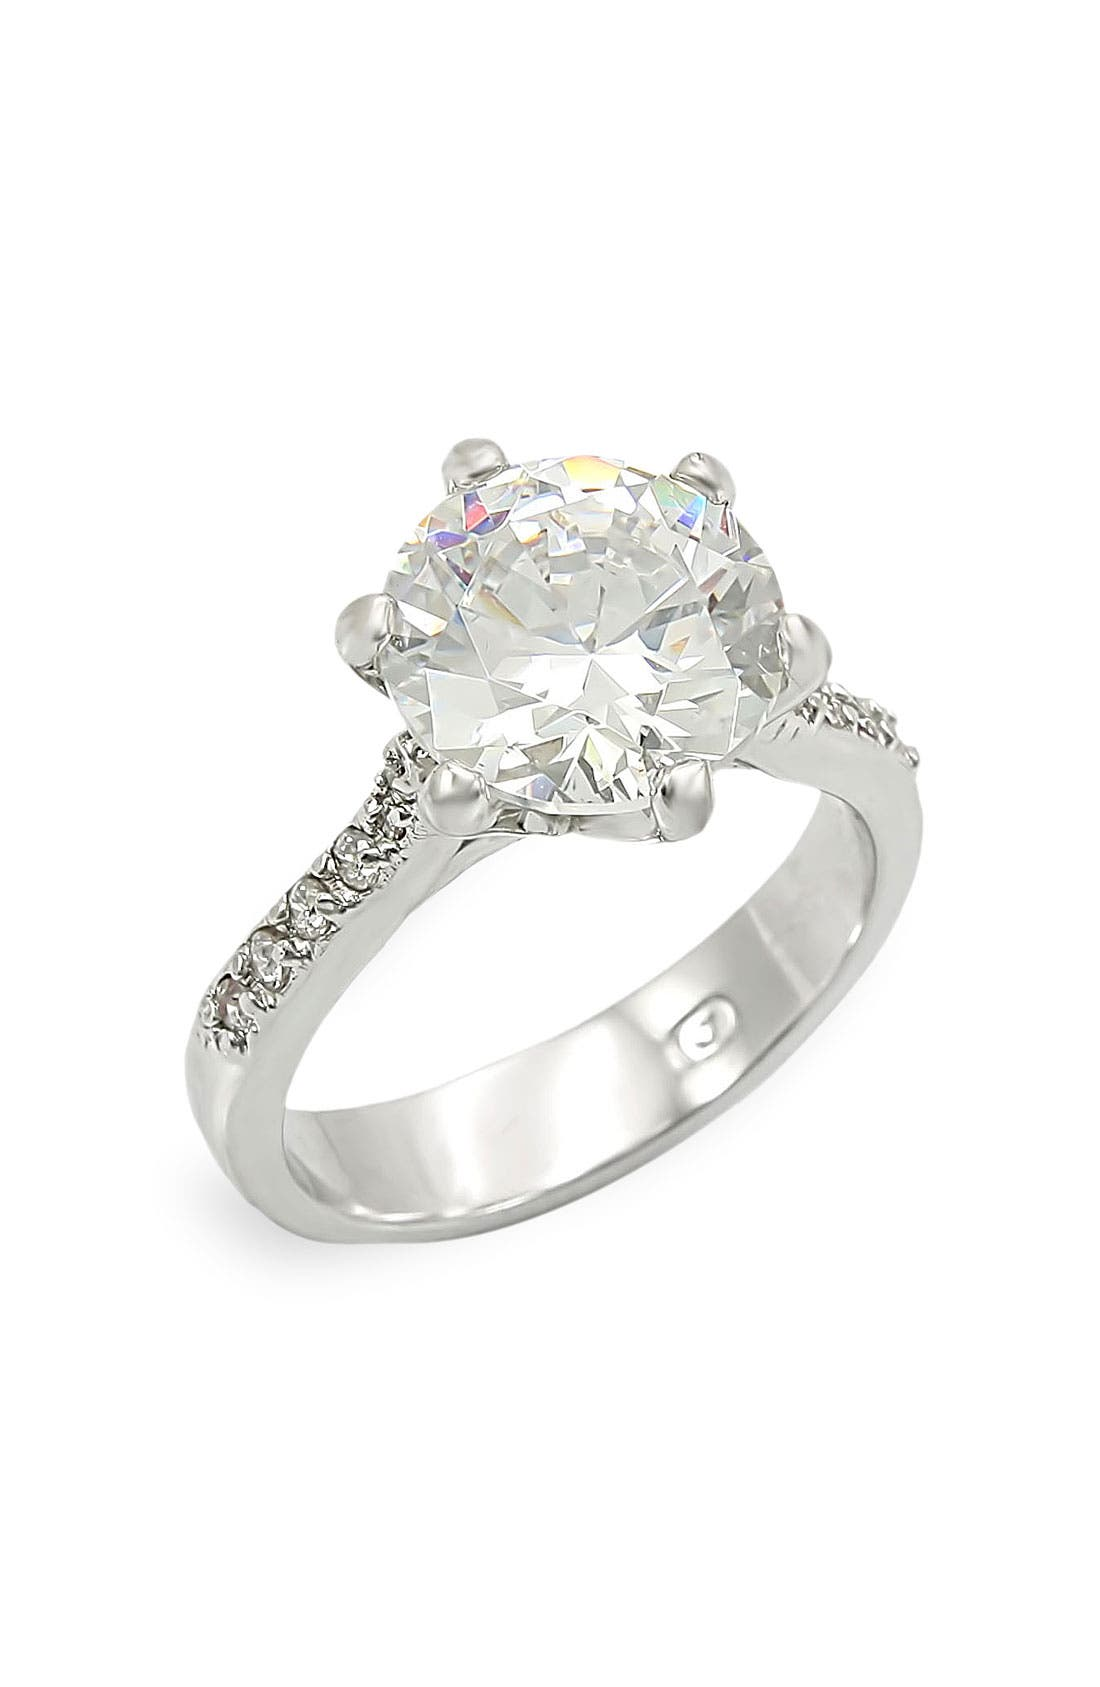 Alternate Image 1 Selected - Ariella Collection Round Cut Cubic Zirconia Ring